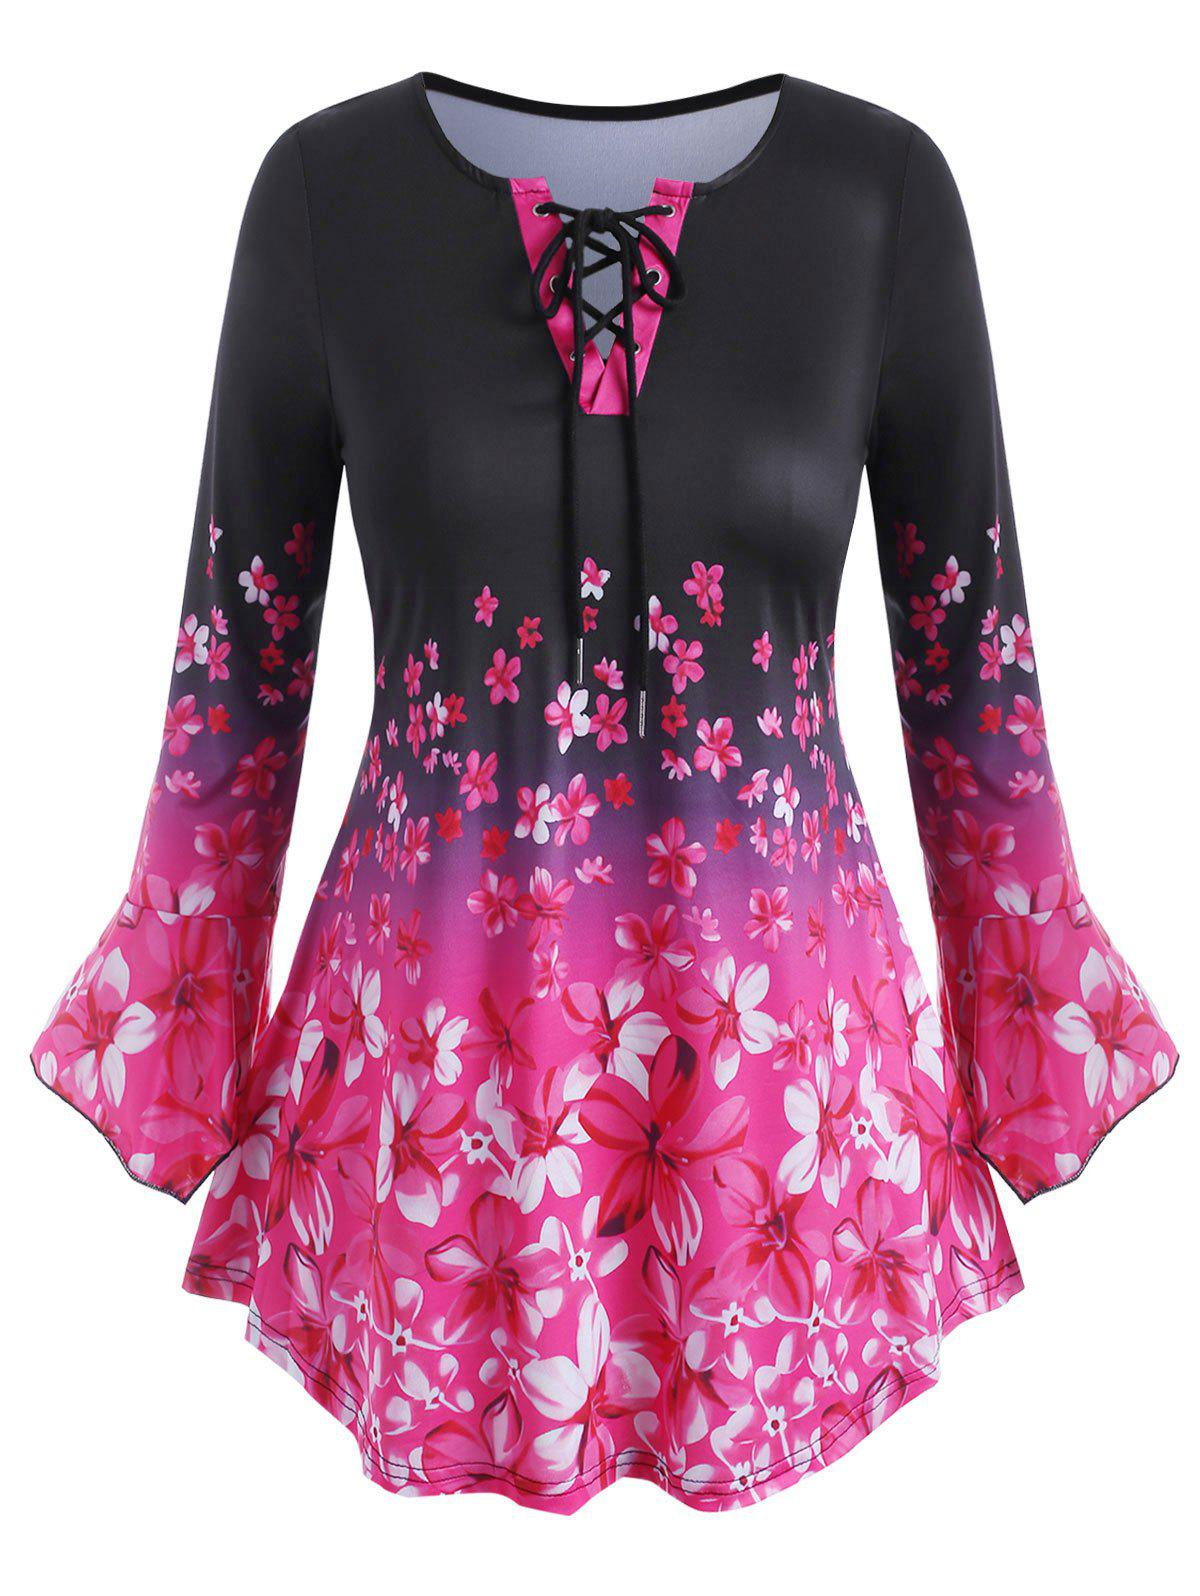 Chic Plus Size Flower Print Lace Up Flare Sleeve T-shirt